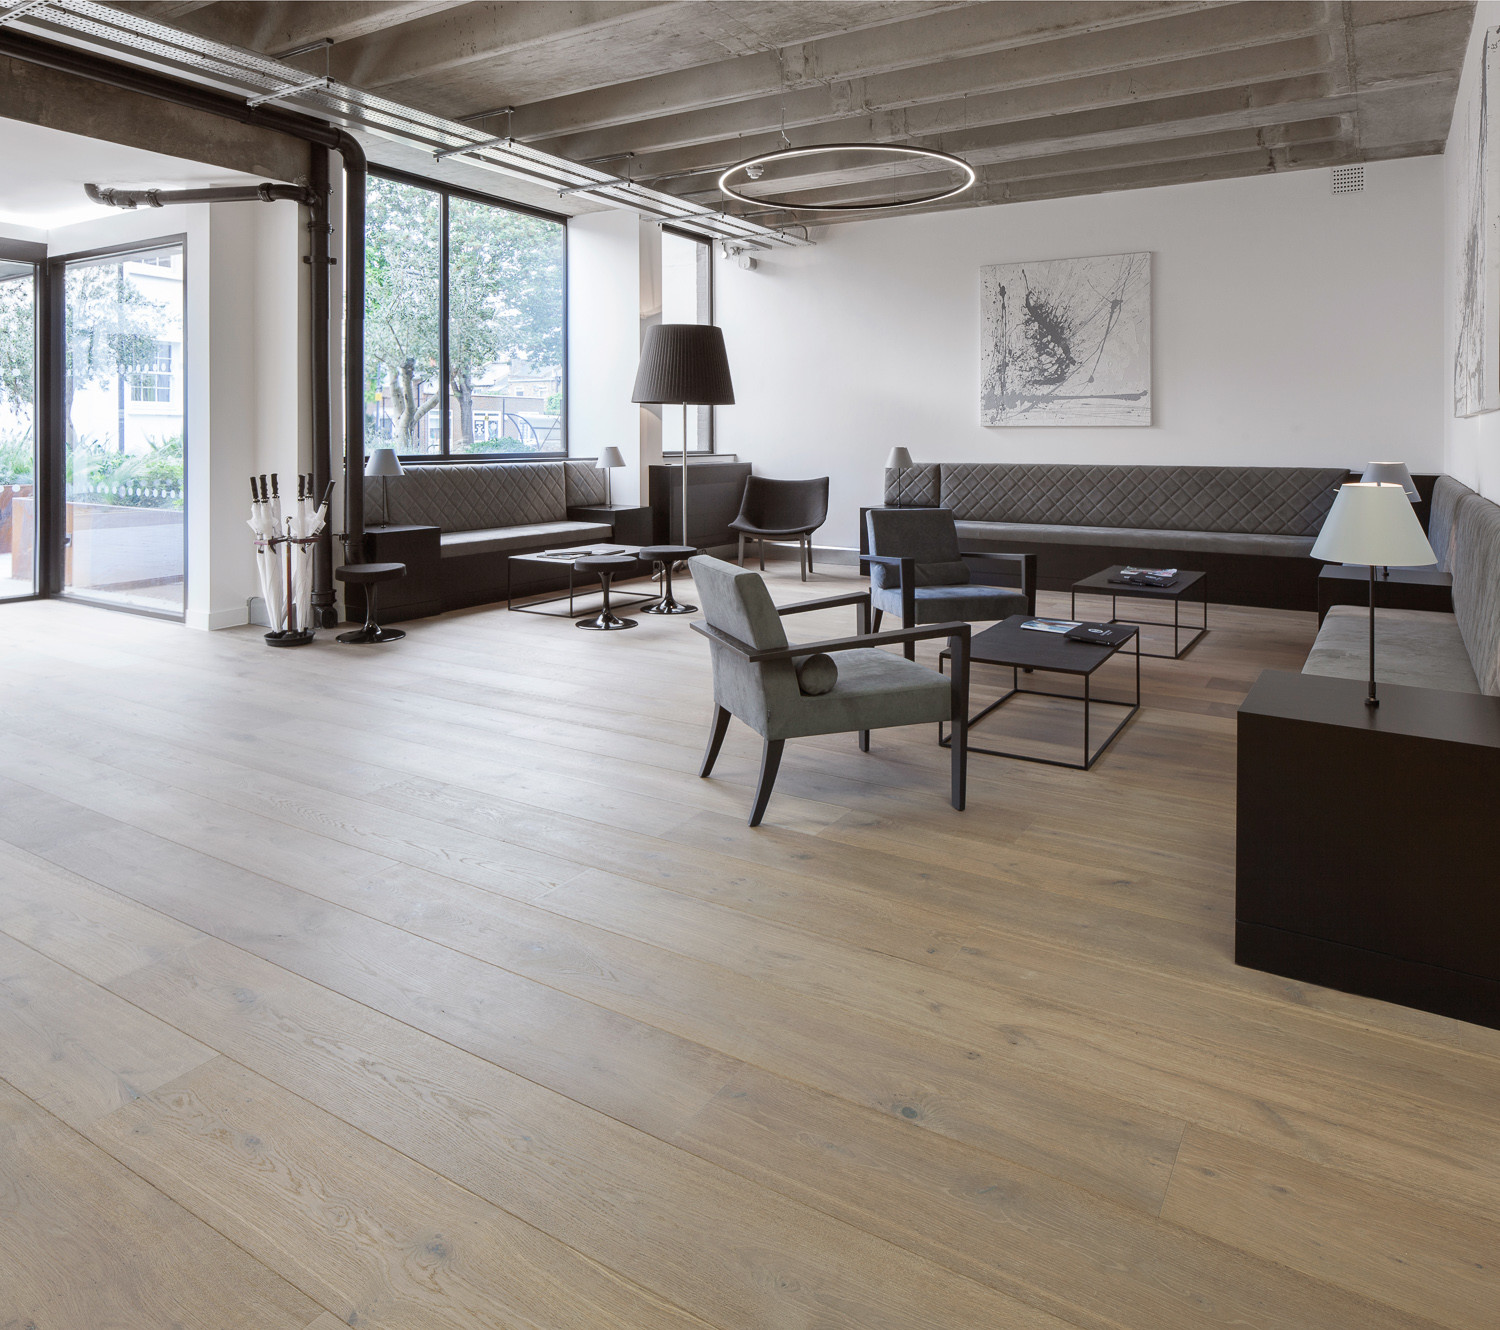 Long island Hardwood Floor Sanding Refinishing Of Blog Archives the New Reclaimed Flooring Companythe New with Regard to the Report Indicated that 82 Of Workers who Were Employed In Places with Eight or More Wood Surfaces Had Higher Personal Productivity Mood Concentration